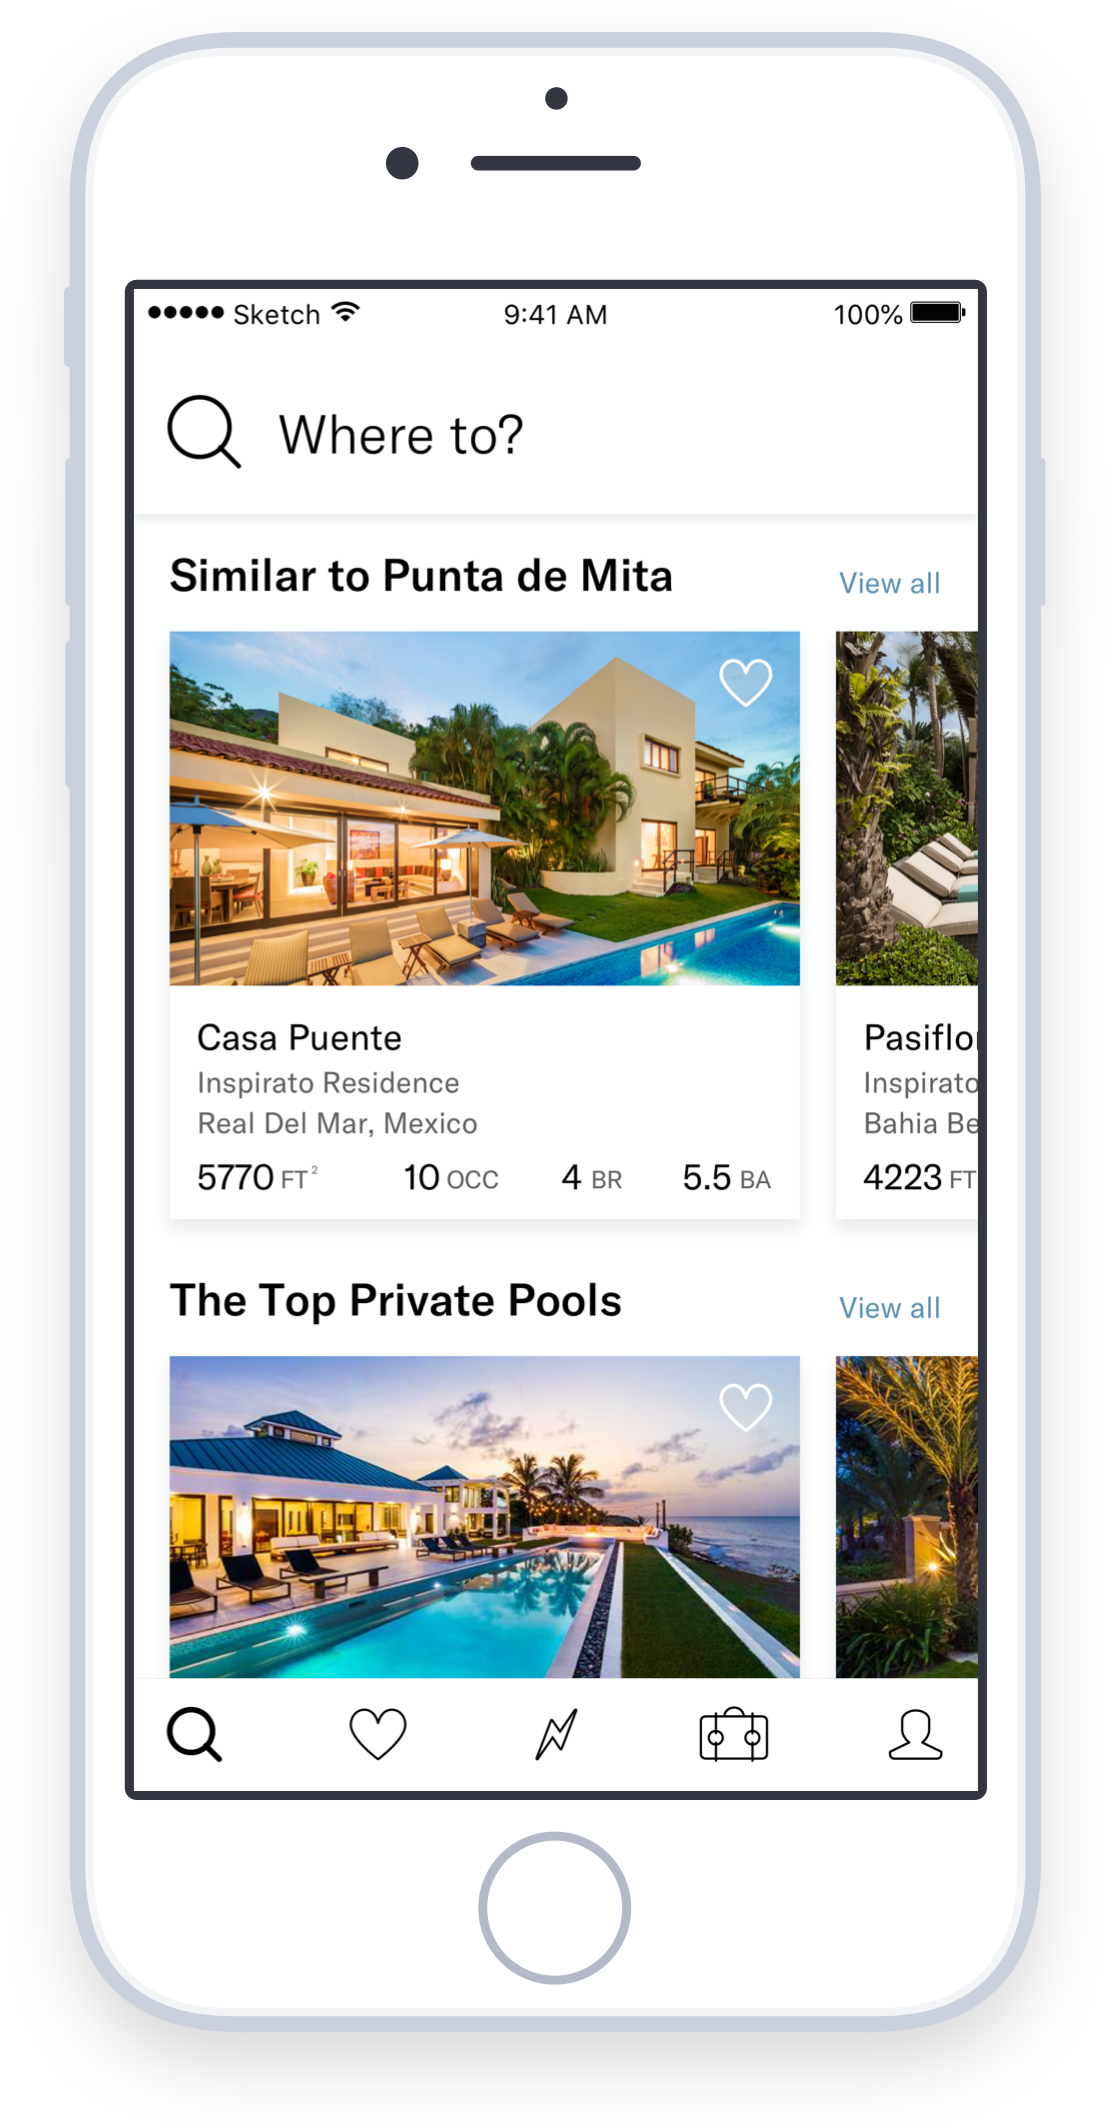 Homes at the core of the experience - The original version of the app put destinations at the core of the experience. However, we discovered that people really wanted to see our homes. Now, instead of opening the app and seeing generic pictures of a beach in Mexico or a mountain in Colorado, people see what they joined Inspirato for—the impressive collection of luxury vacation homes.